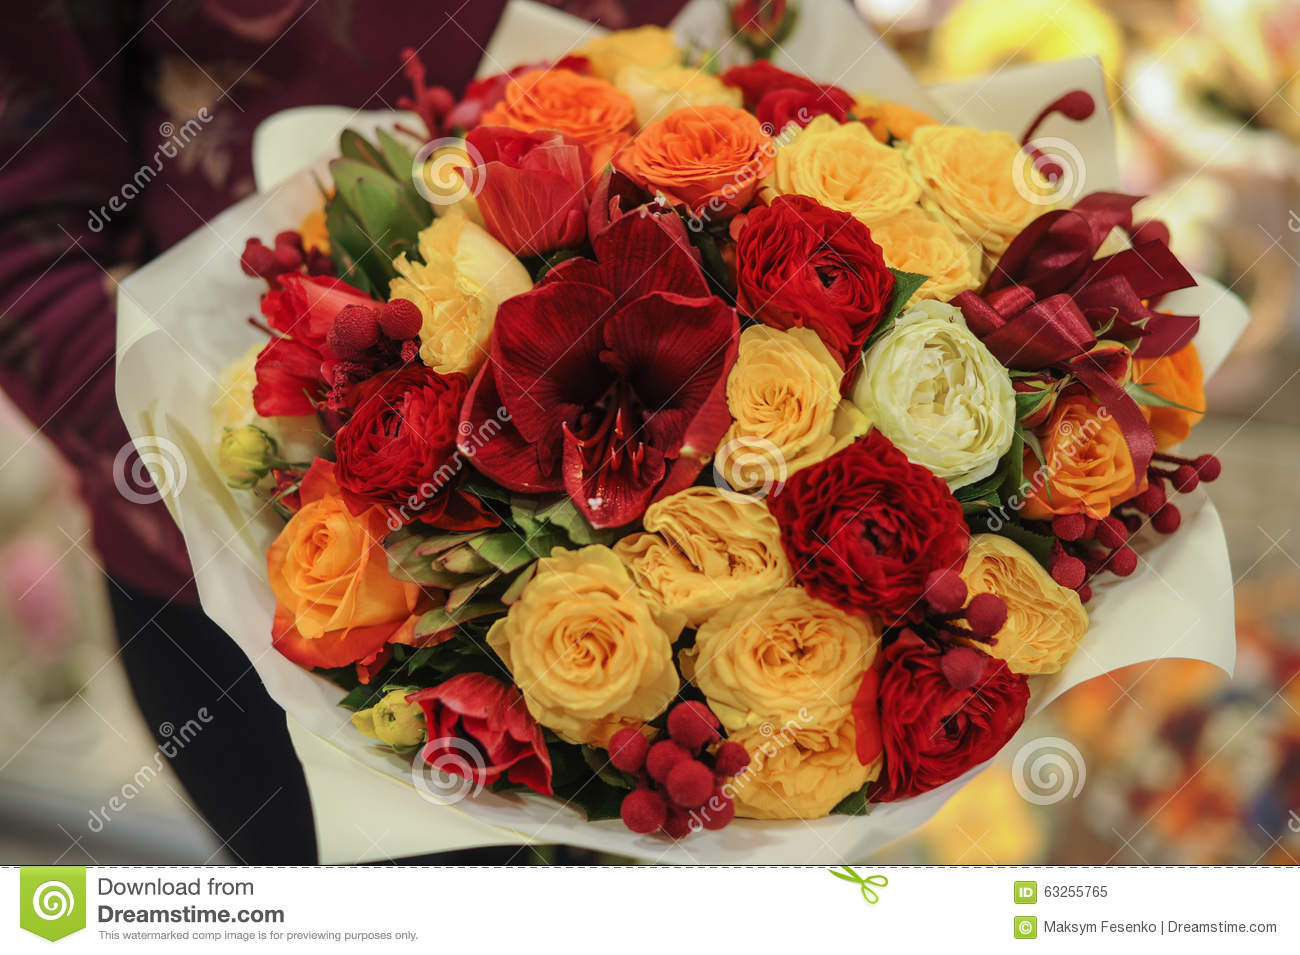 Colorful Bouquet With Roses. Flower Composition Stock Image - Image ...